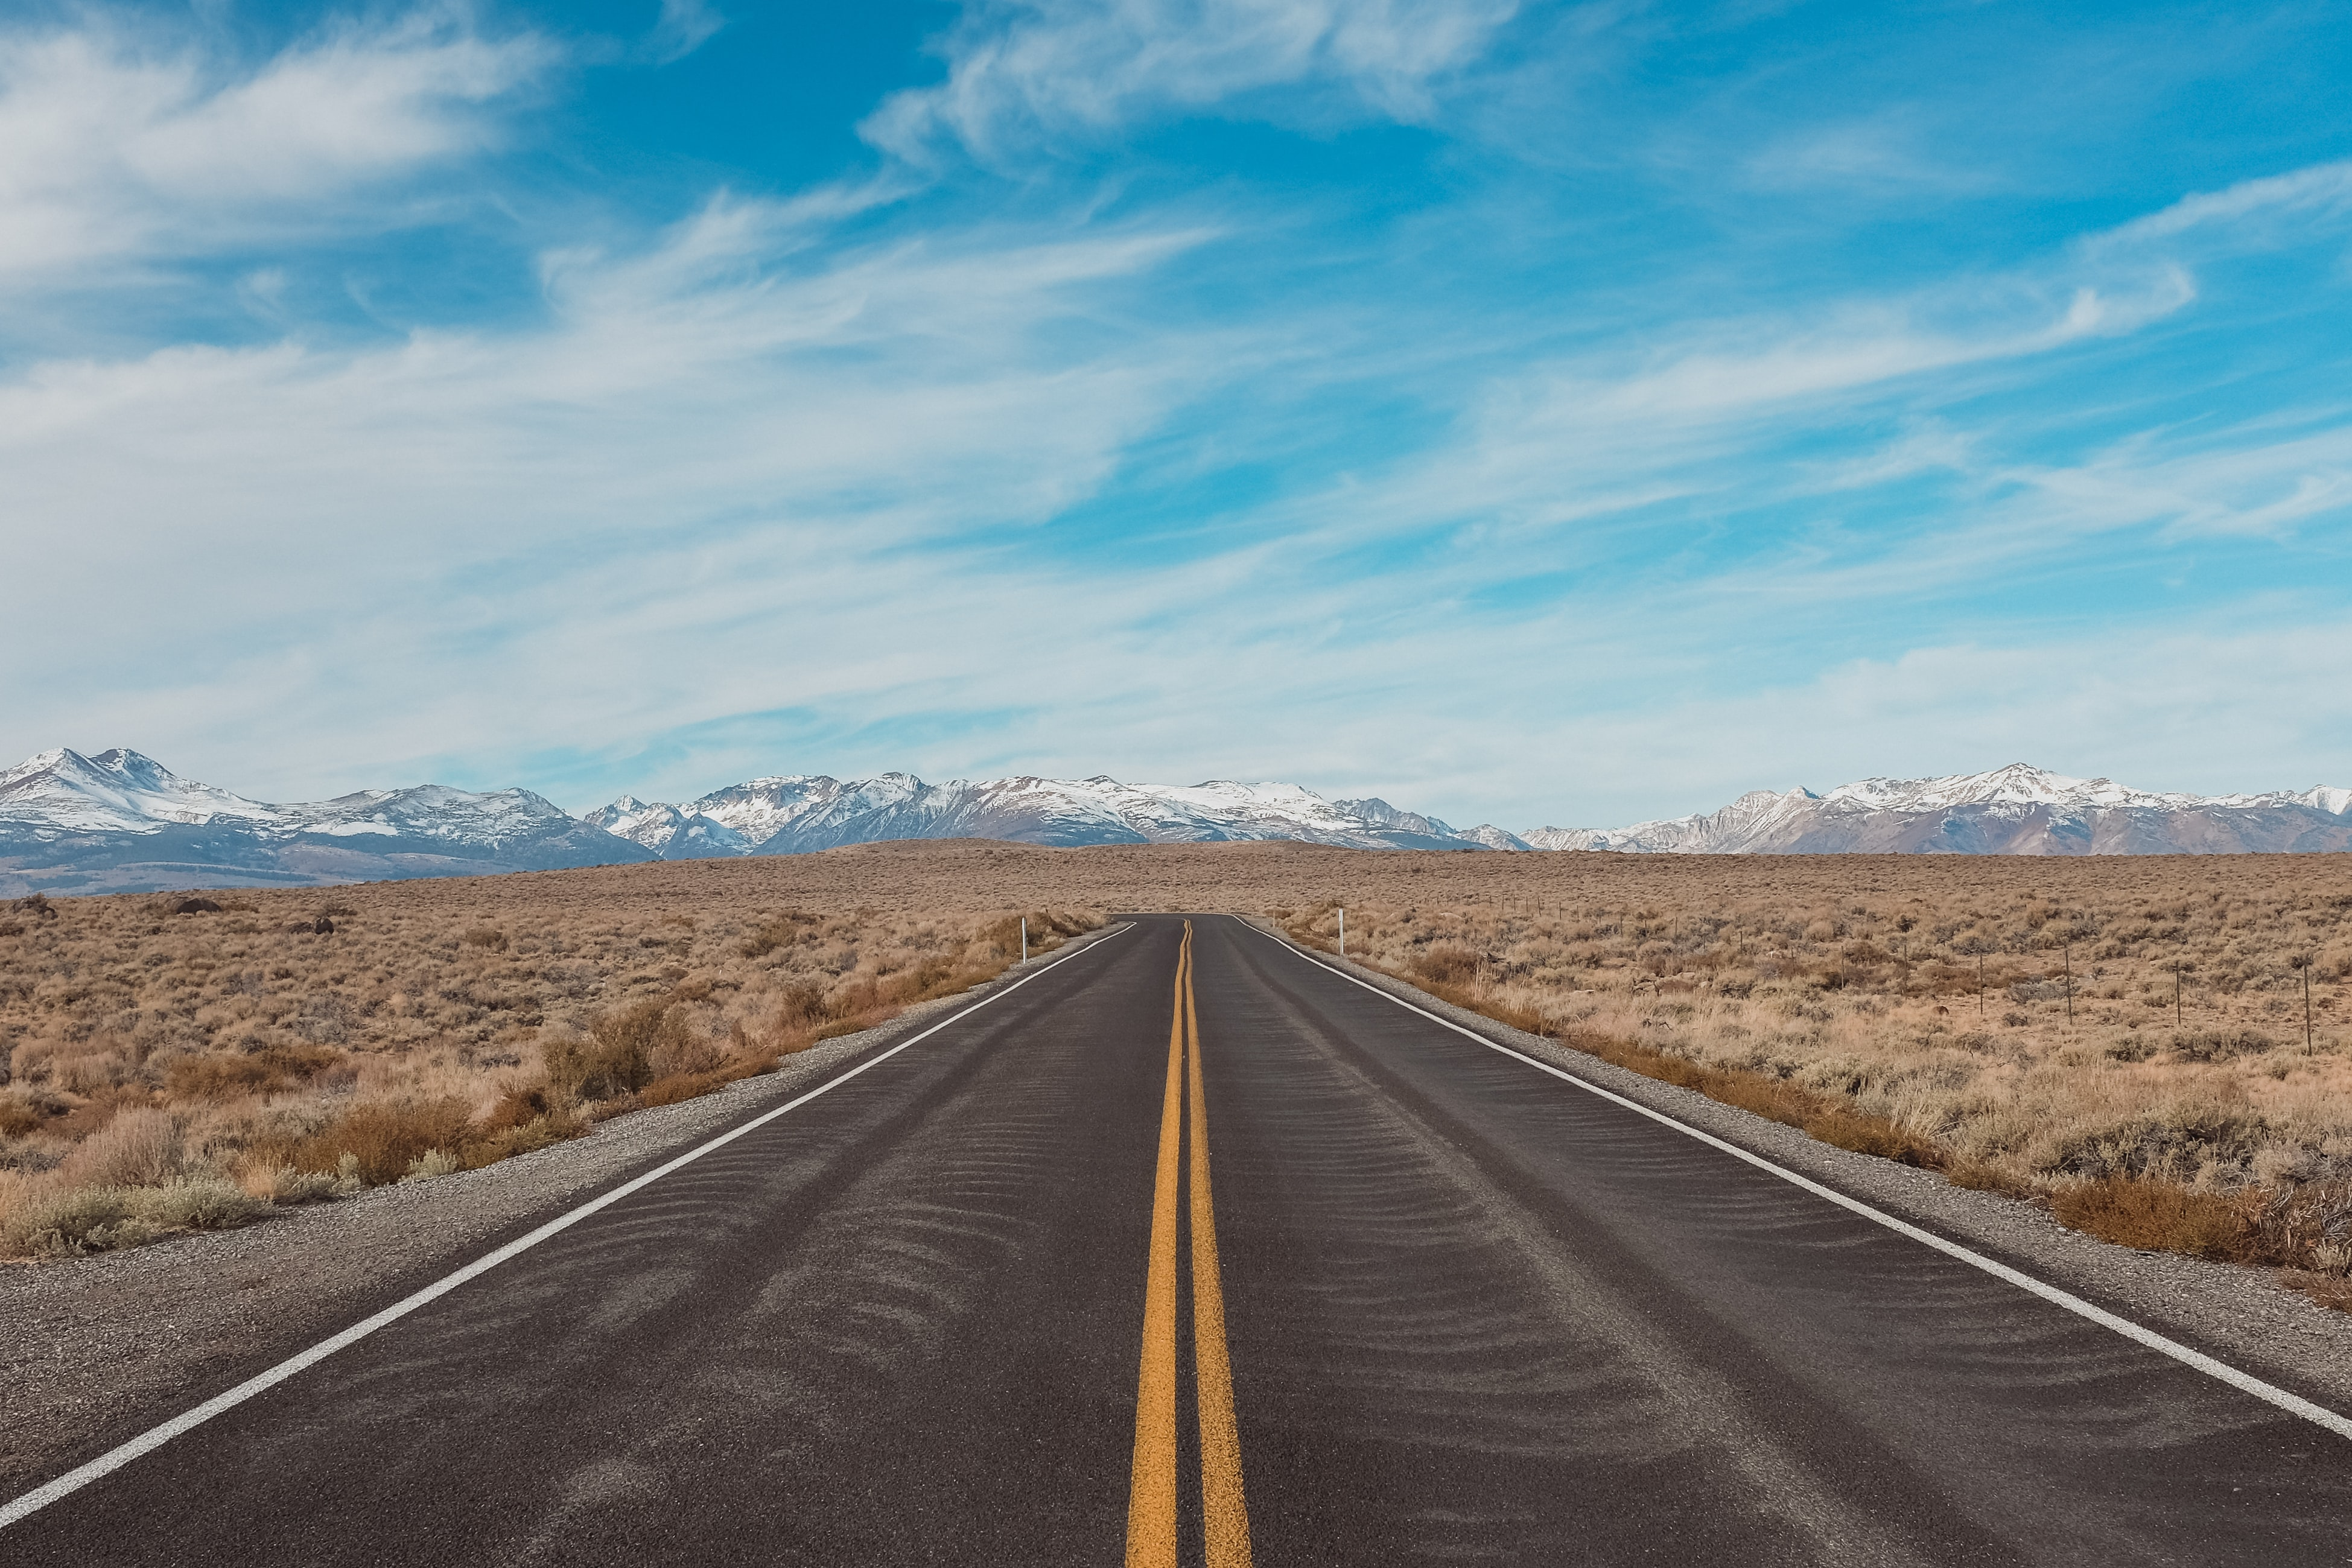 A long empty asphalt road through dry plains with snowy mountains on the horizon